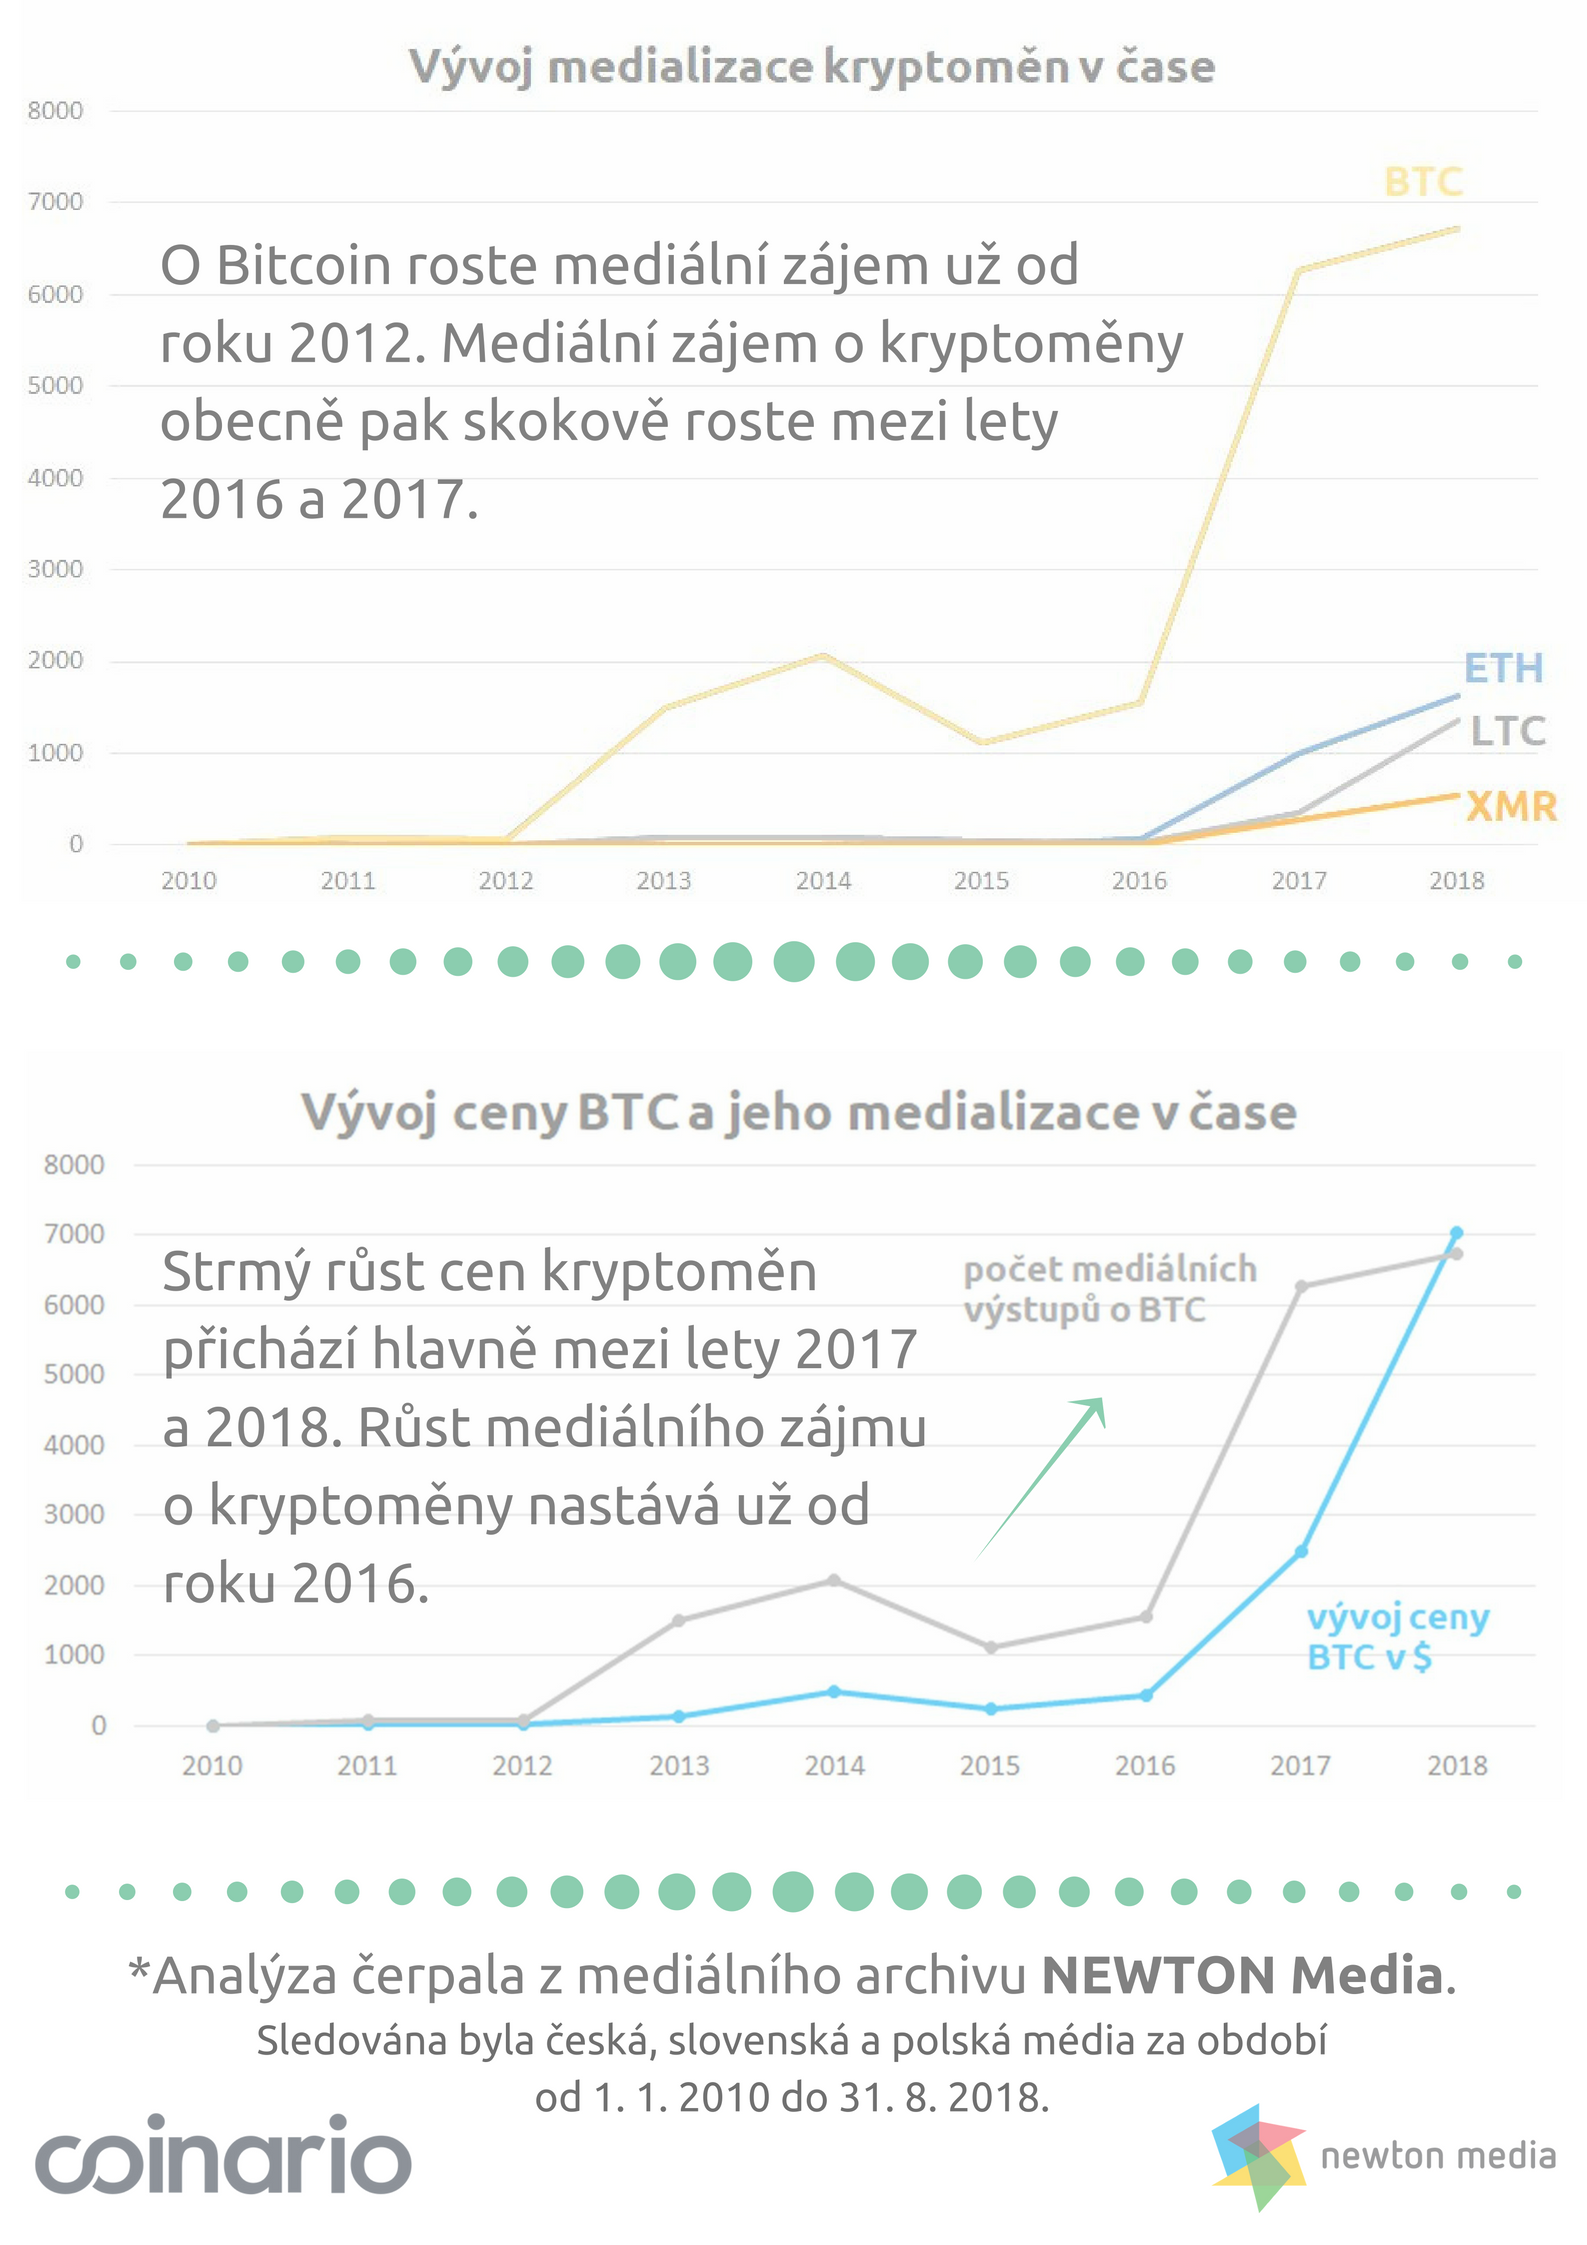 Medialization of Bitcoin and Cryptocurrencies_Coinario.com_NewtonMedia.cz_2